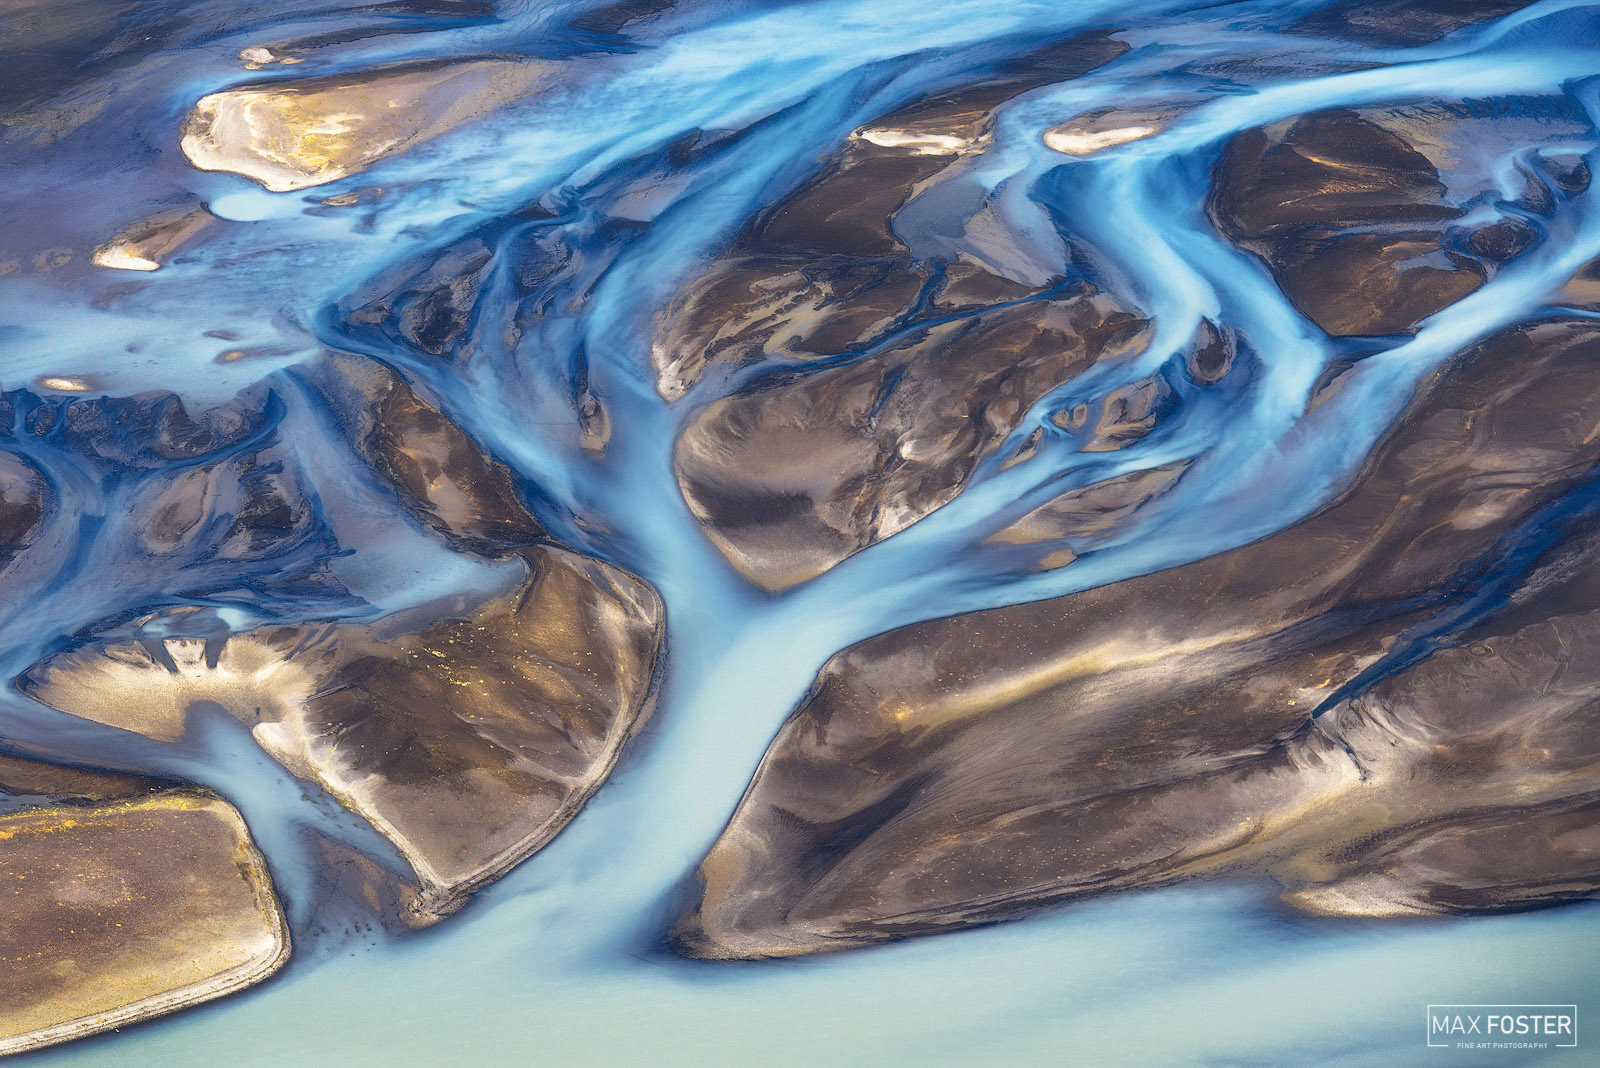 Iceland, River, Blue Blood, photo